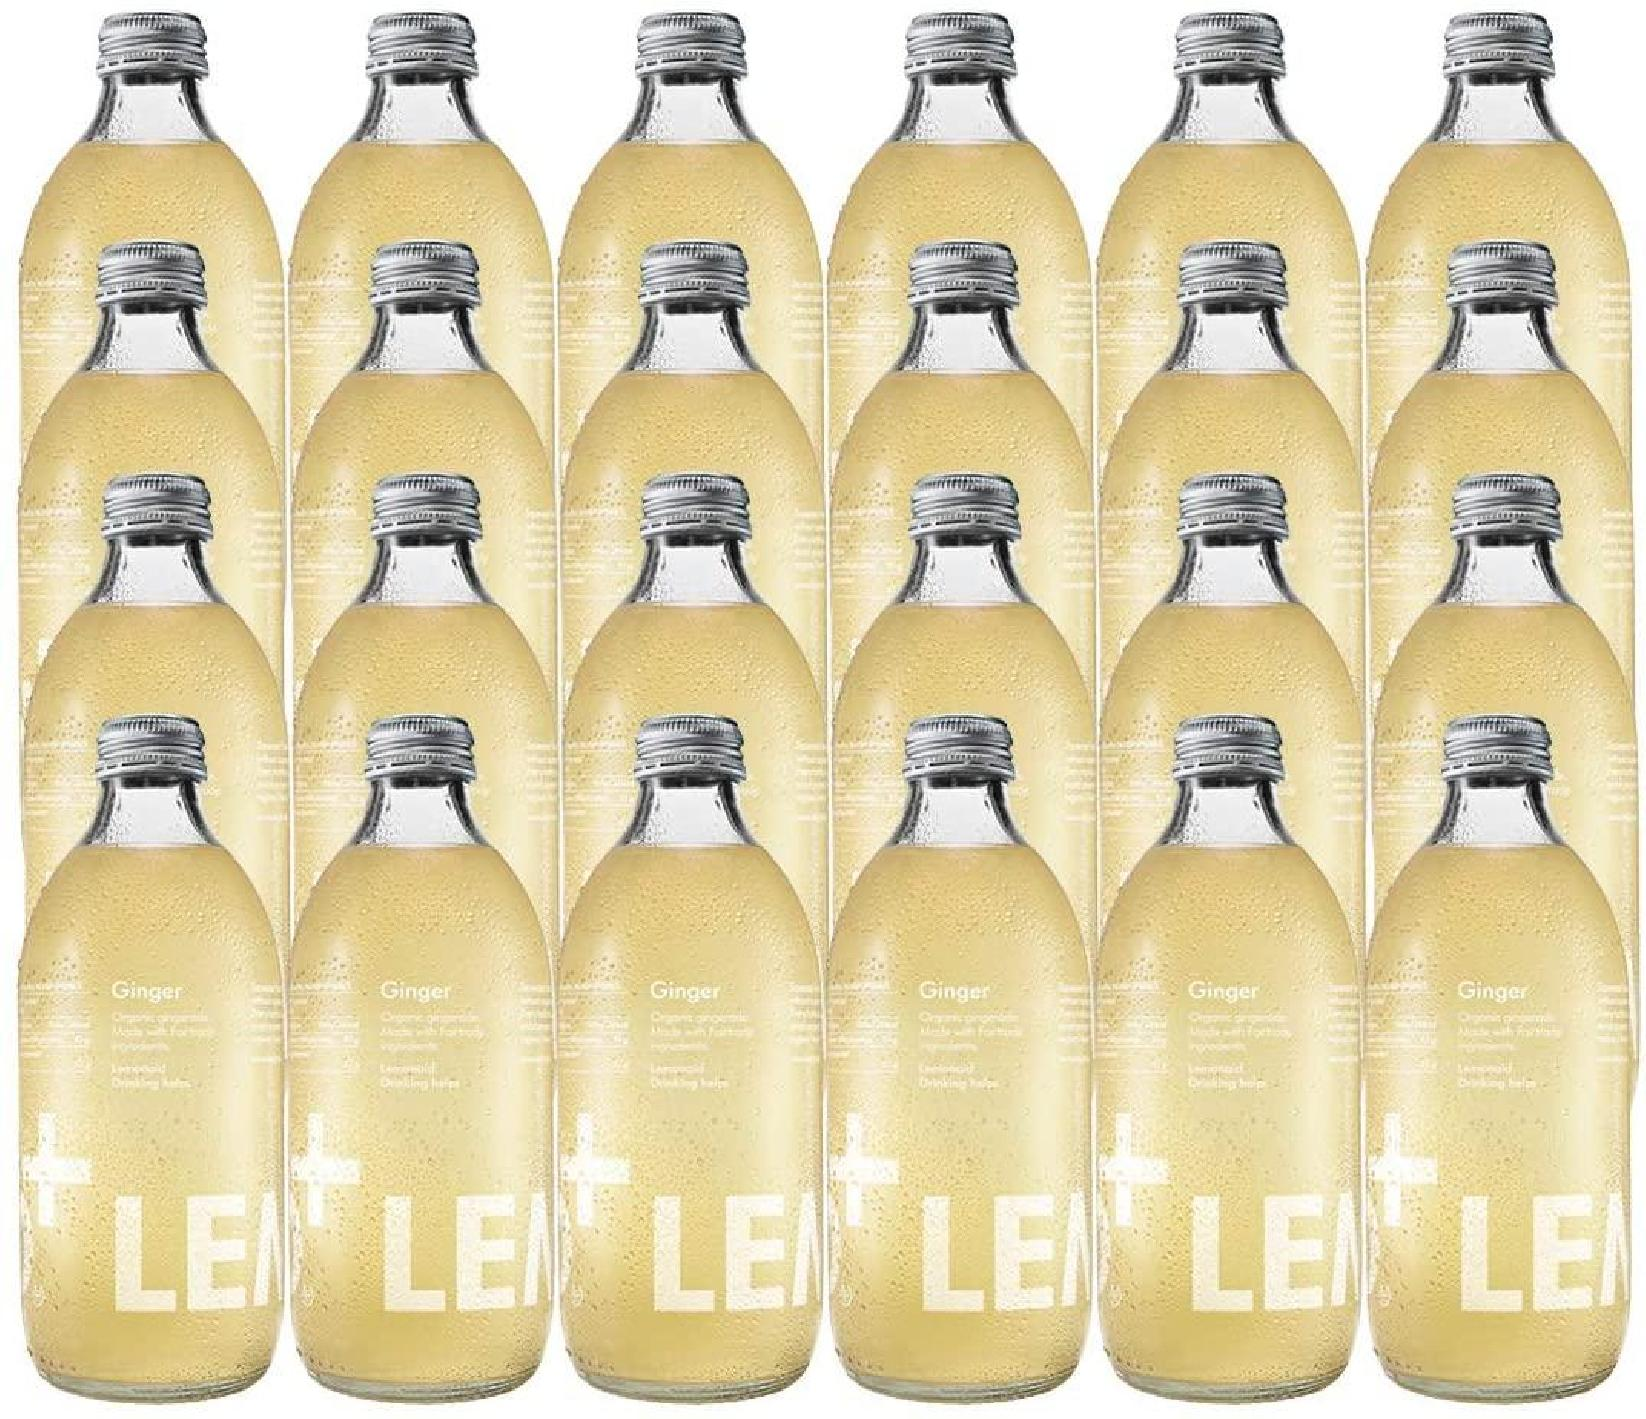 Tonics et Softs - Lemonaid ginger bio 24x33cl -